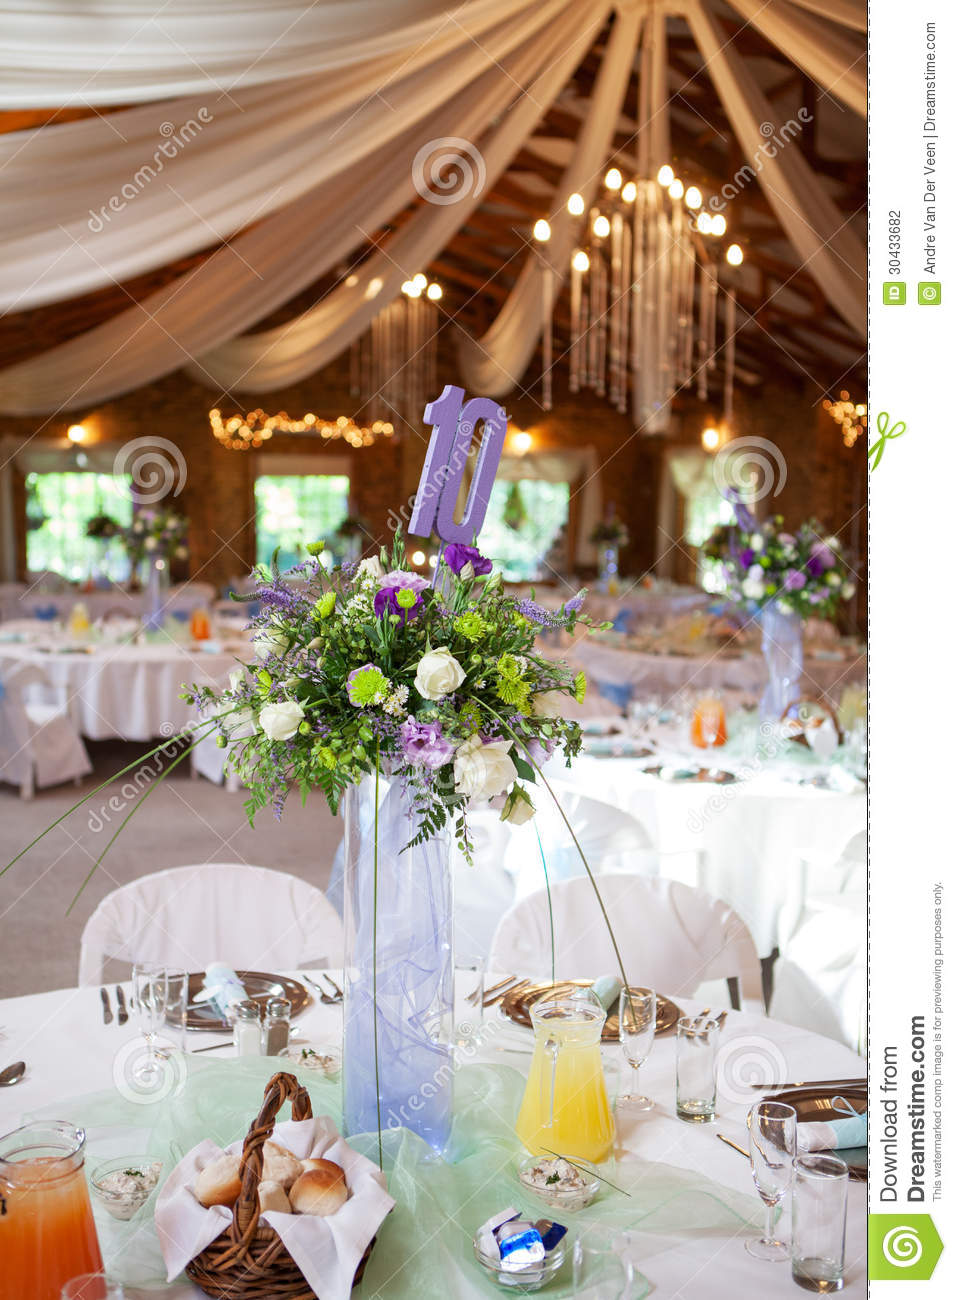 Decorated Tables Decorated Tables With Candelabra At Wedding Reception Selective